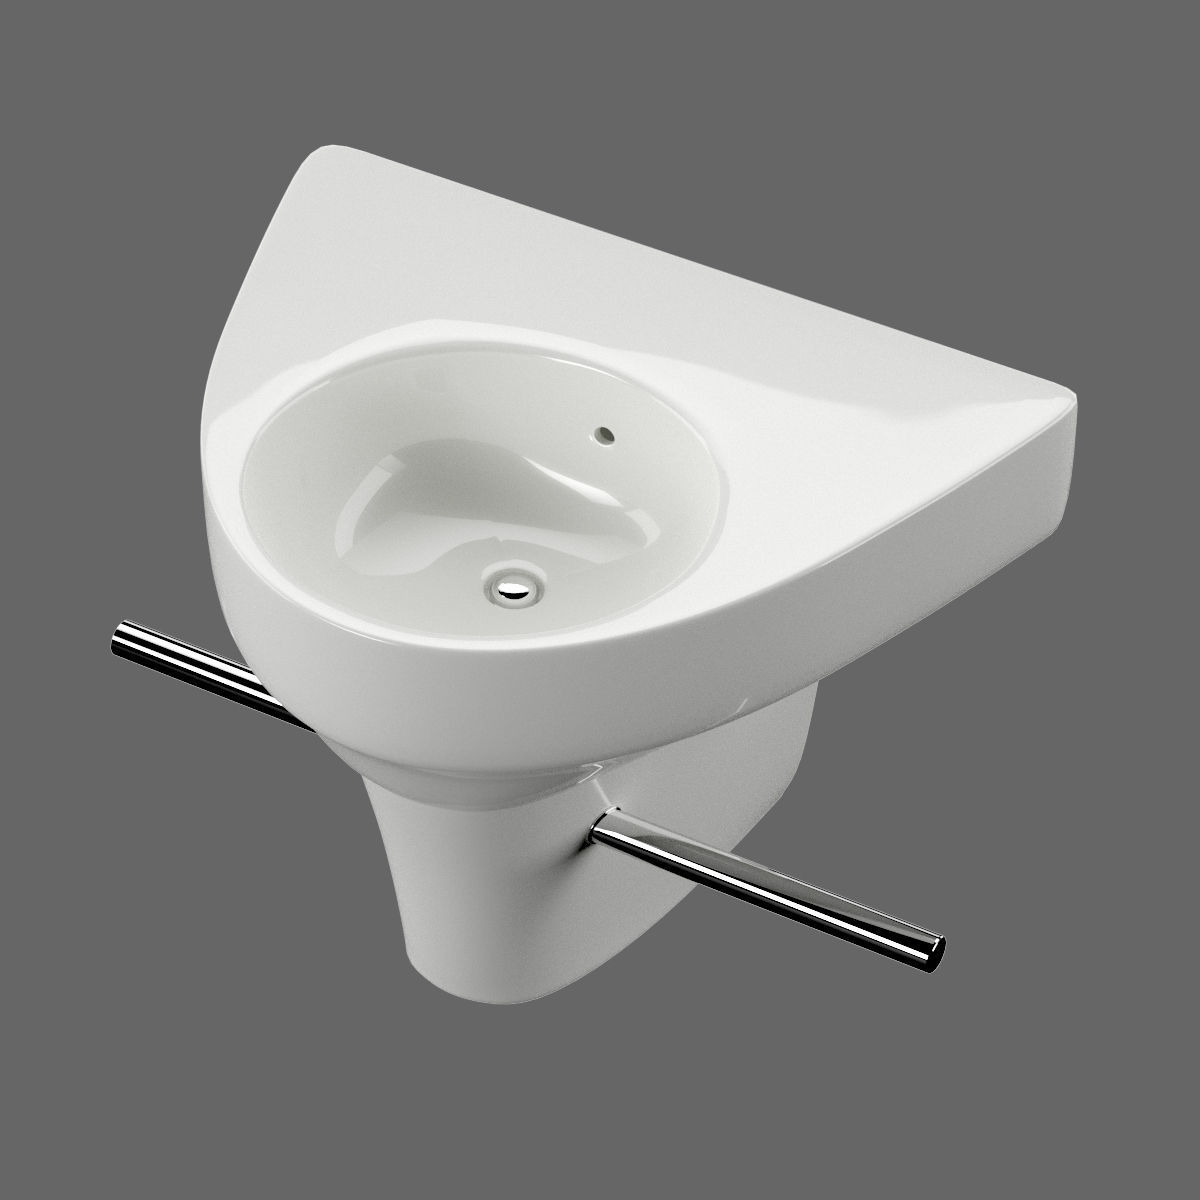 Washbasin Duravit Starck 2 art 071450